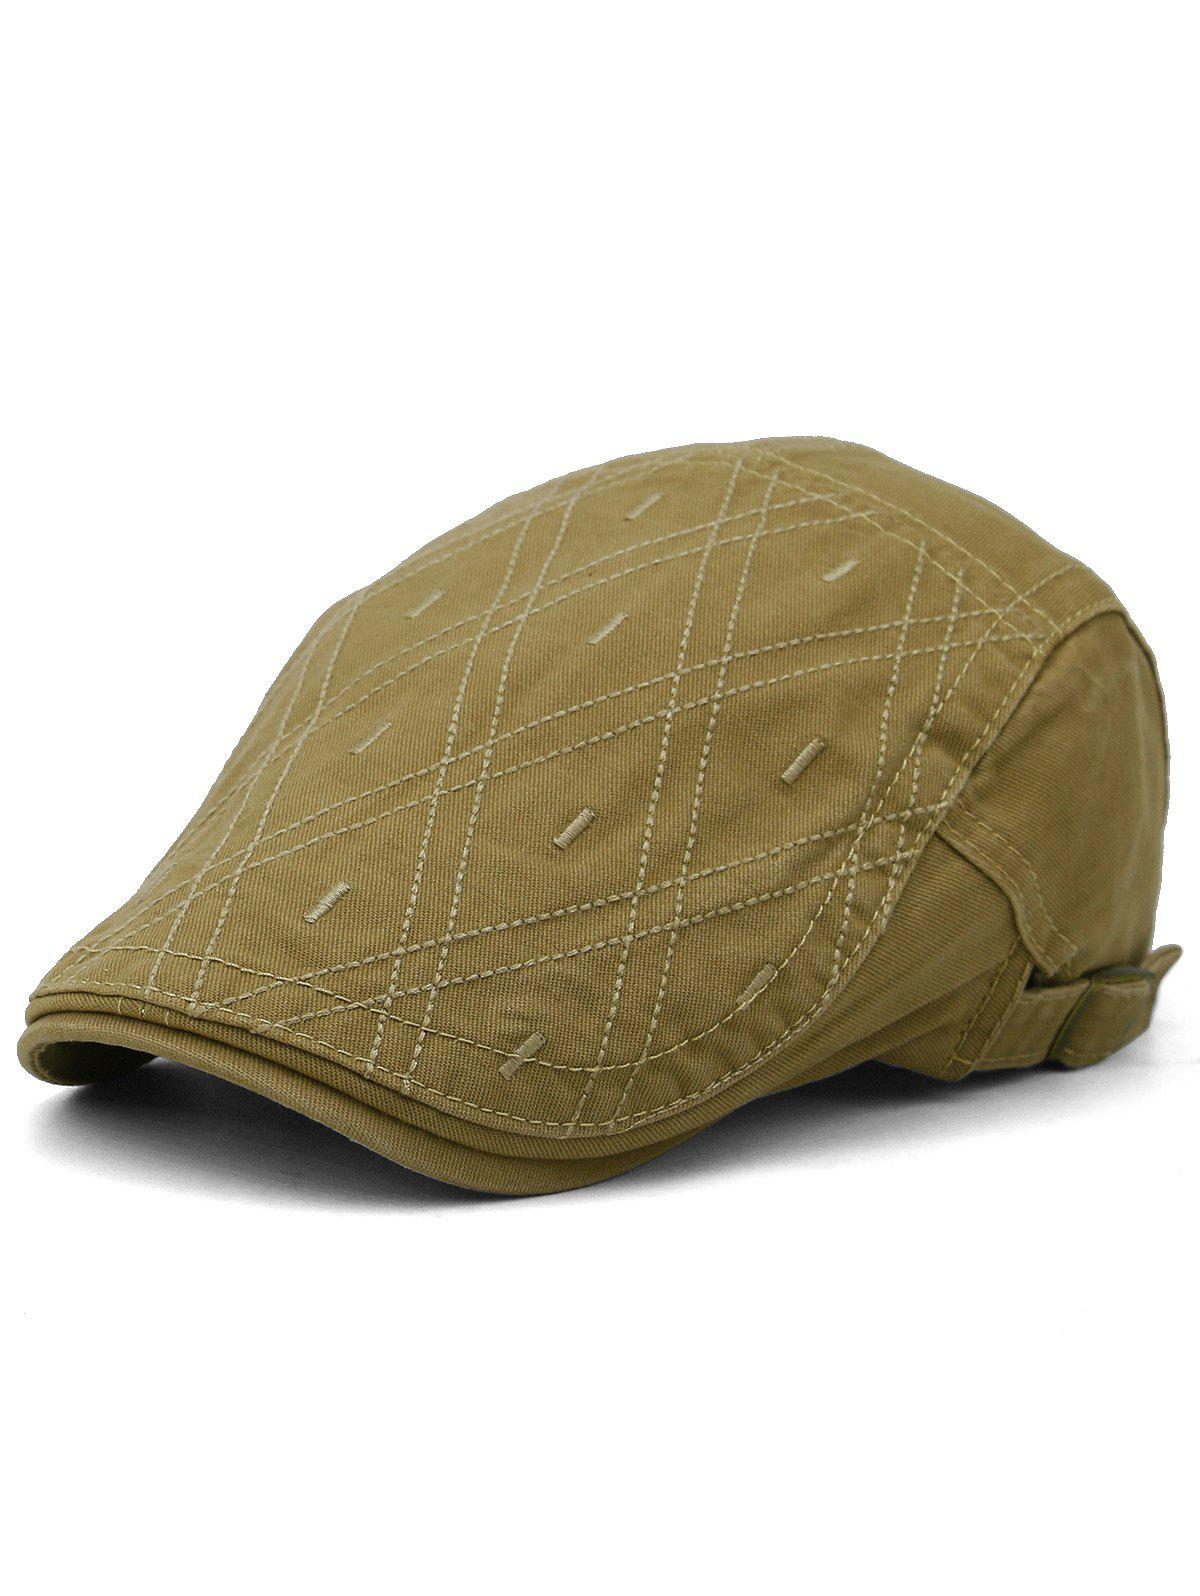 New Rhombus Embroidery Adjustable Jeff Hat